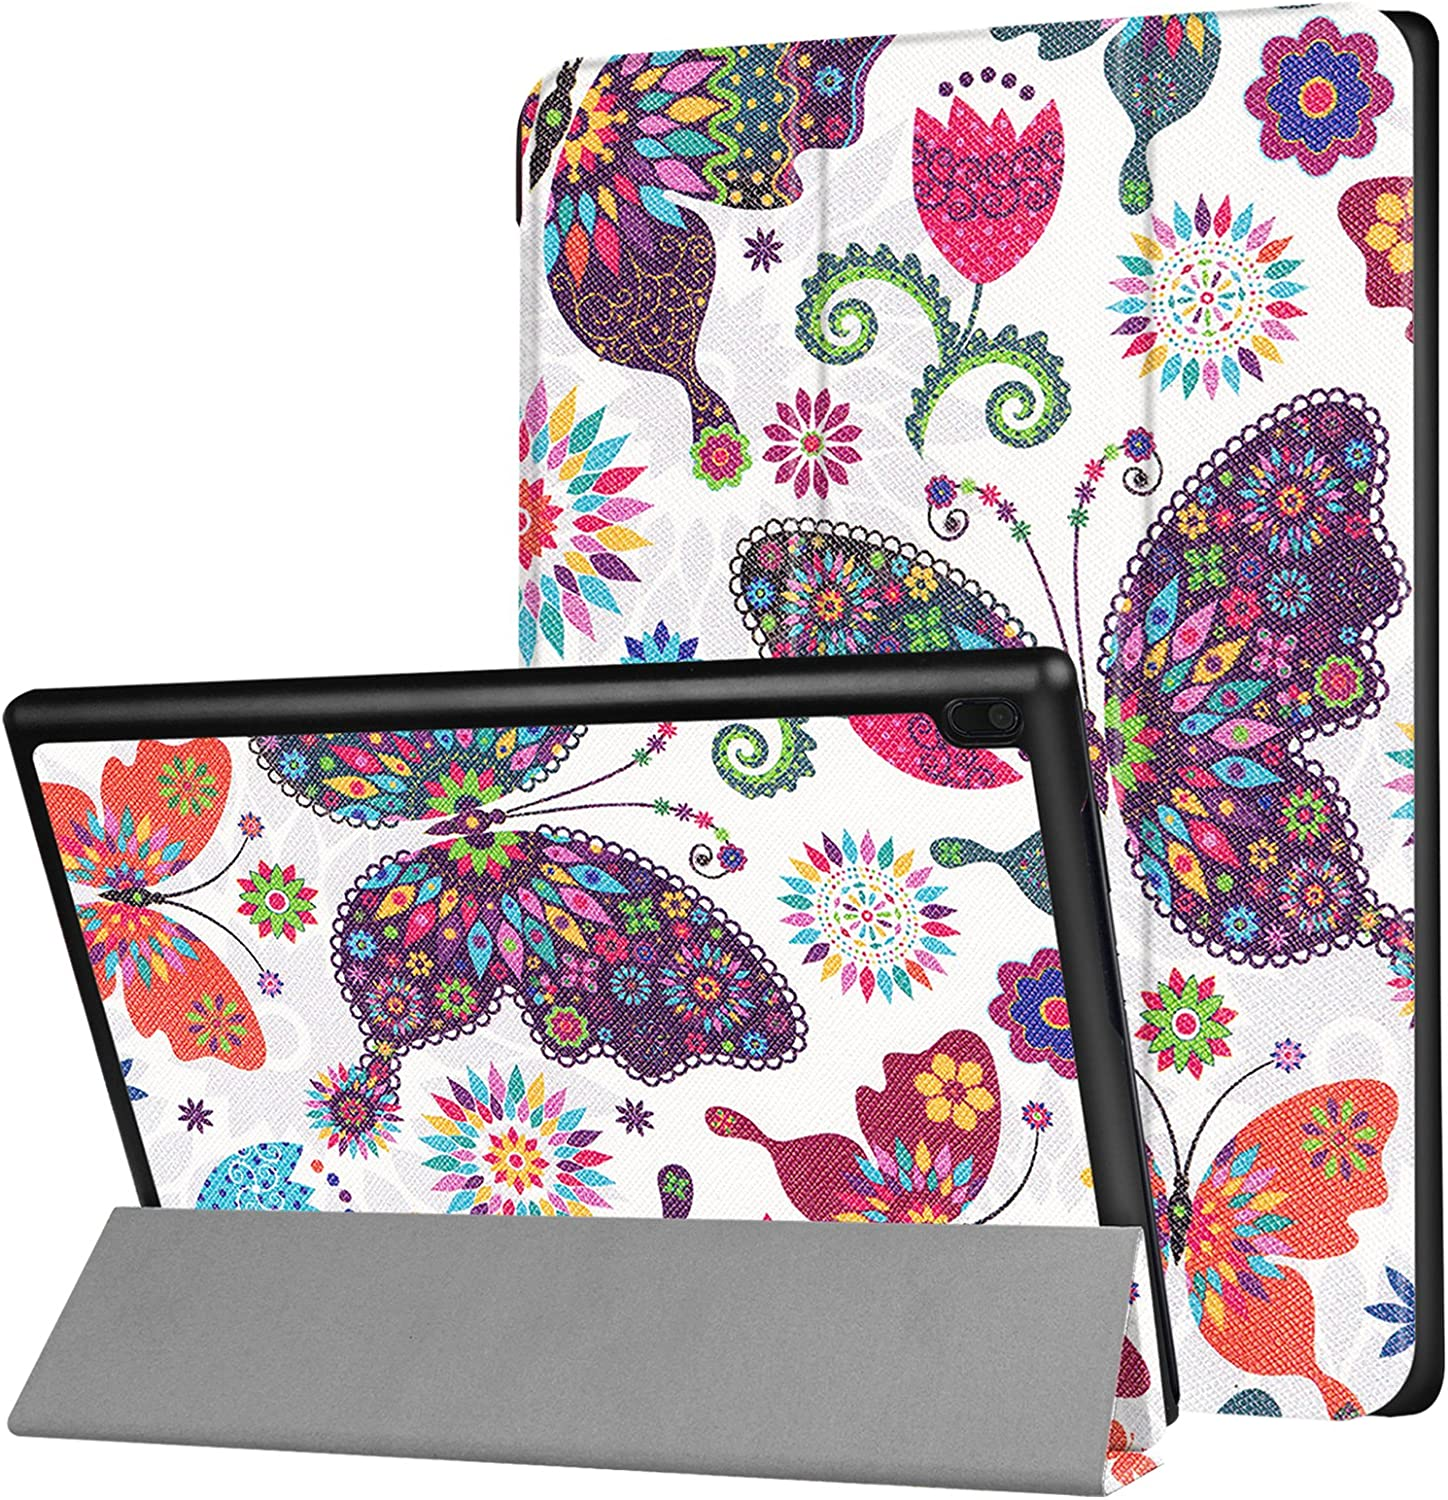 UUCOVERS Folio Case for Lenovo Tab 4 10 2017 (TB-X304F/TB-X304N), Slim Ligntweignt Smart PU Leather Tri-fold Shell Multi-Angle Standing Folio Shockproof Cover with Auto Sleep/Wake, Colorful Butterfly